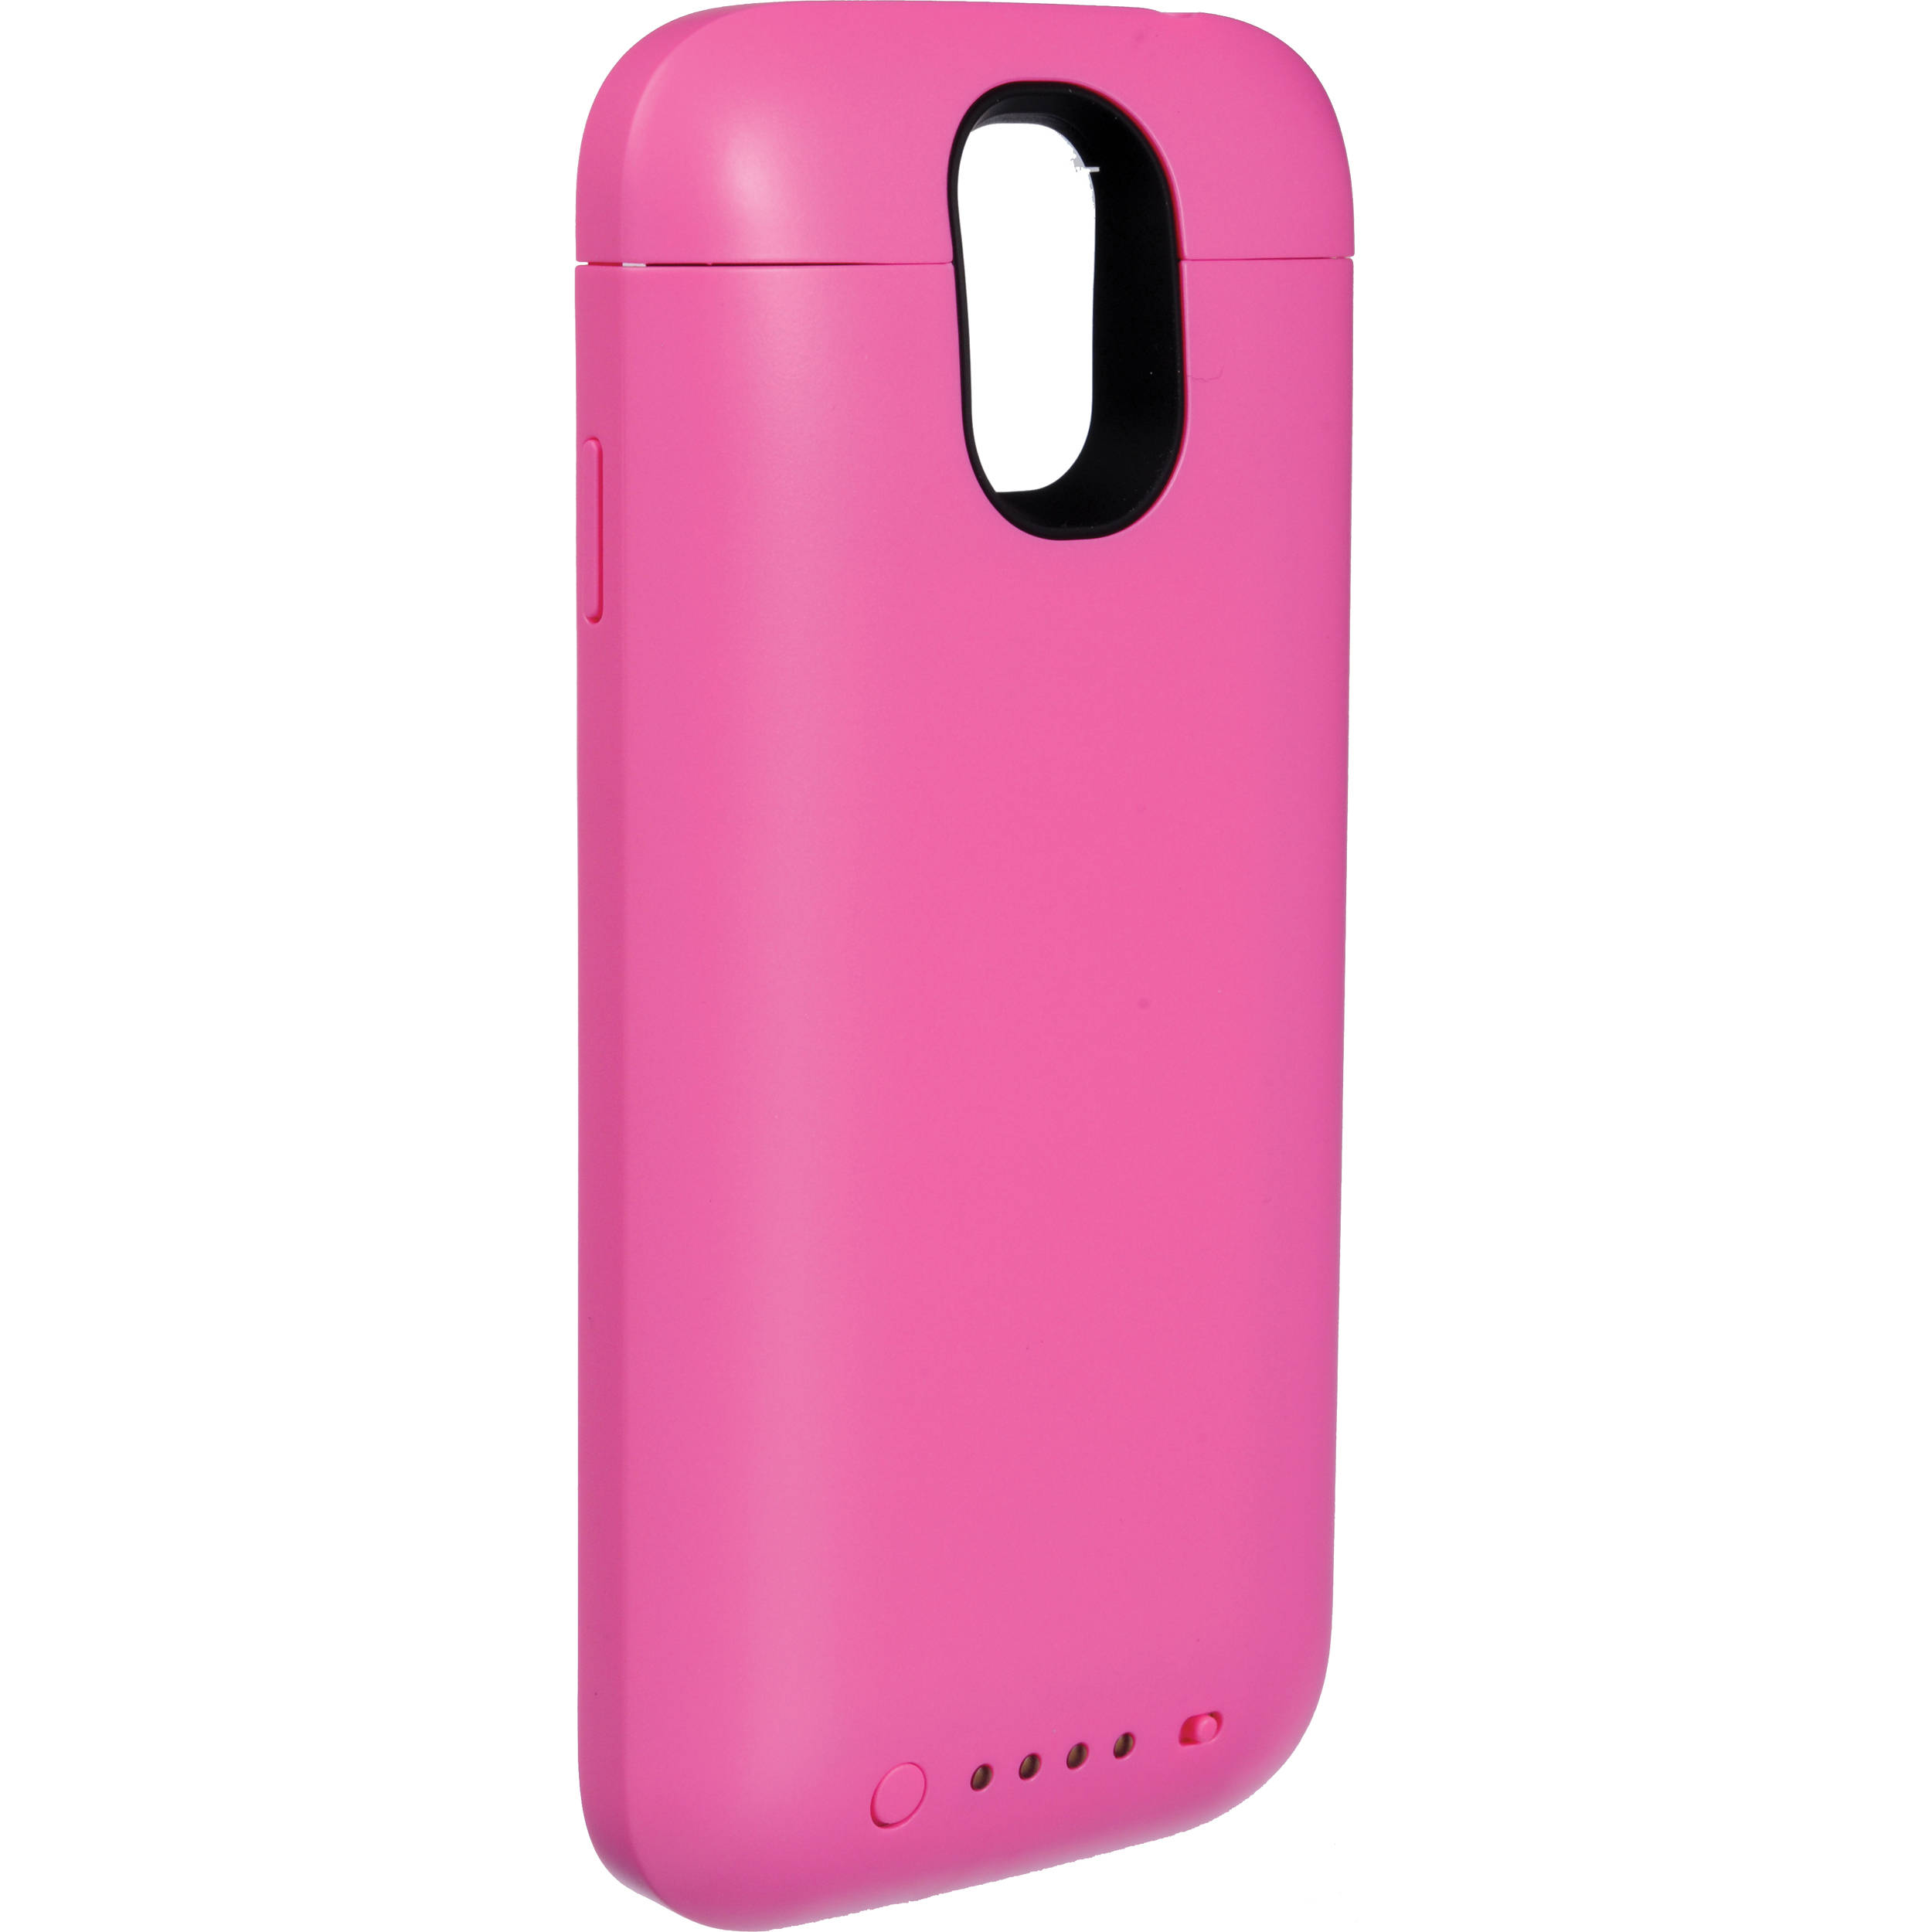 size 40 6fe71 7be45 mophie juice pack Battery Case for Galaxy S4 (Pink)